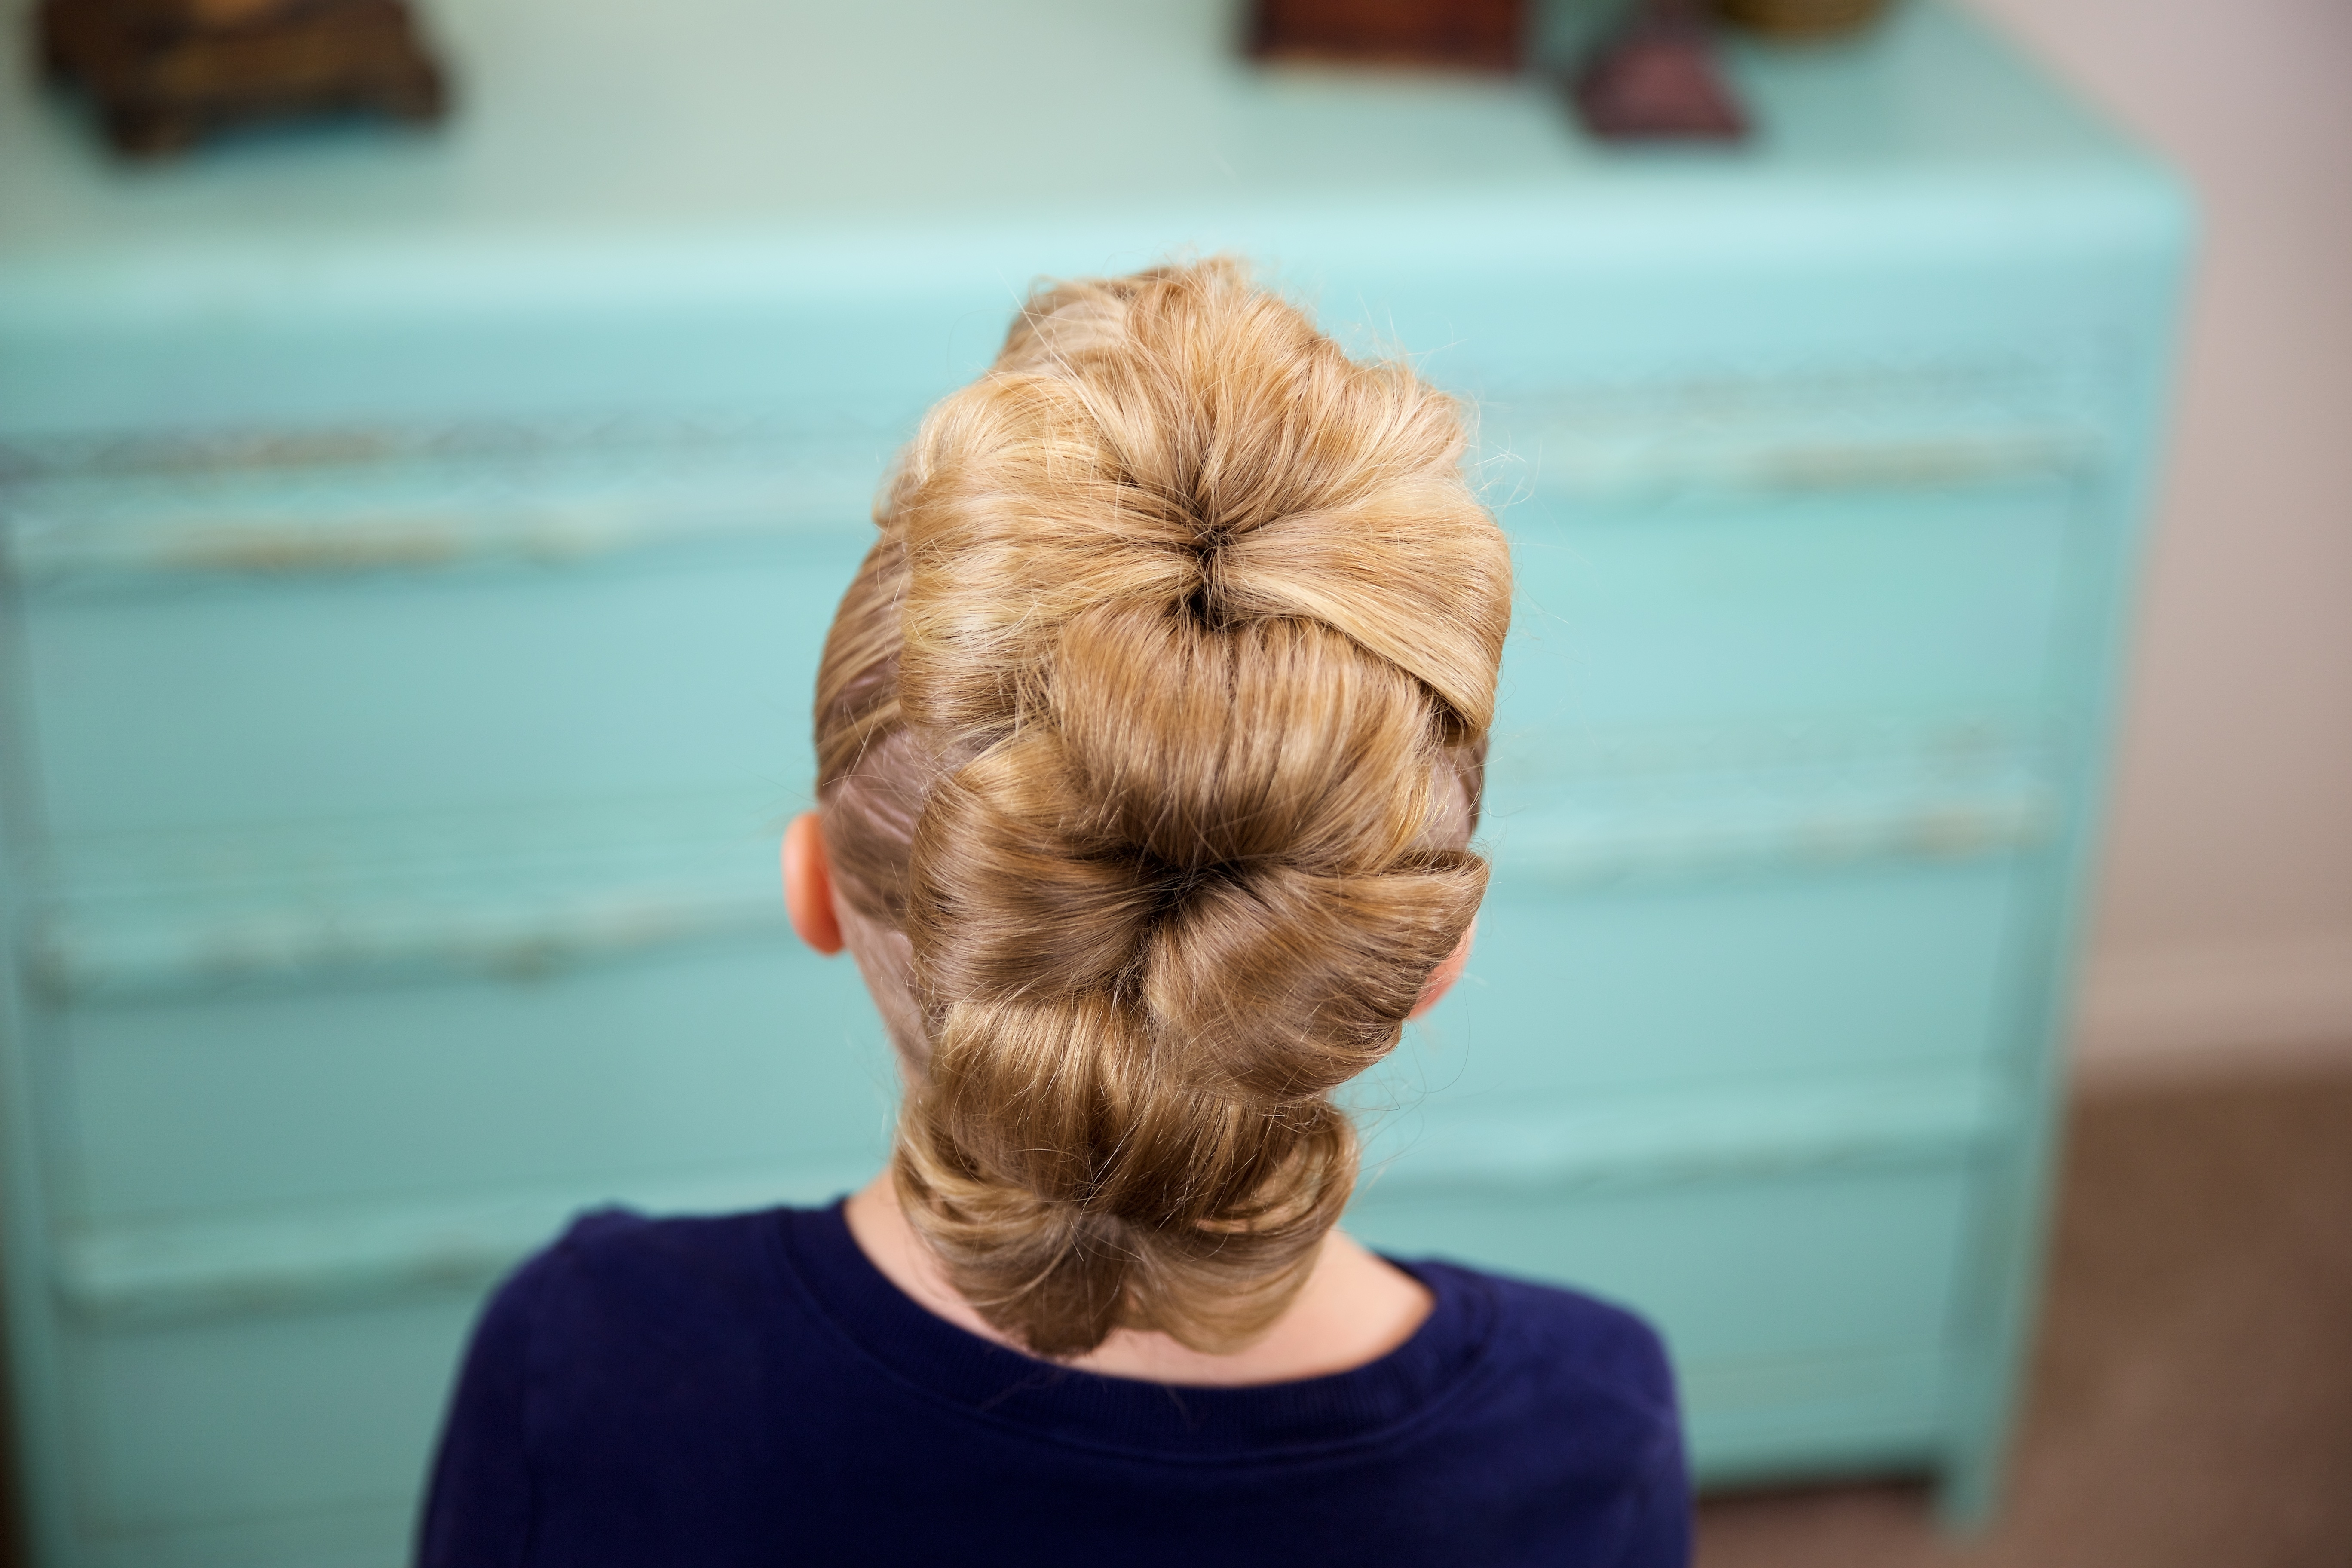 Hairstyles For Dance (View 8 of 15)